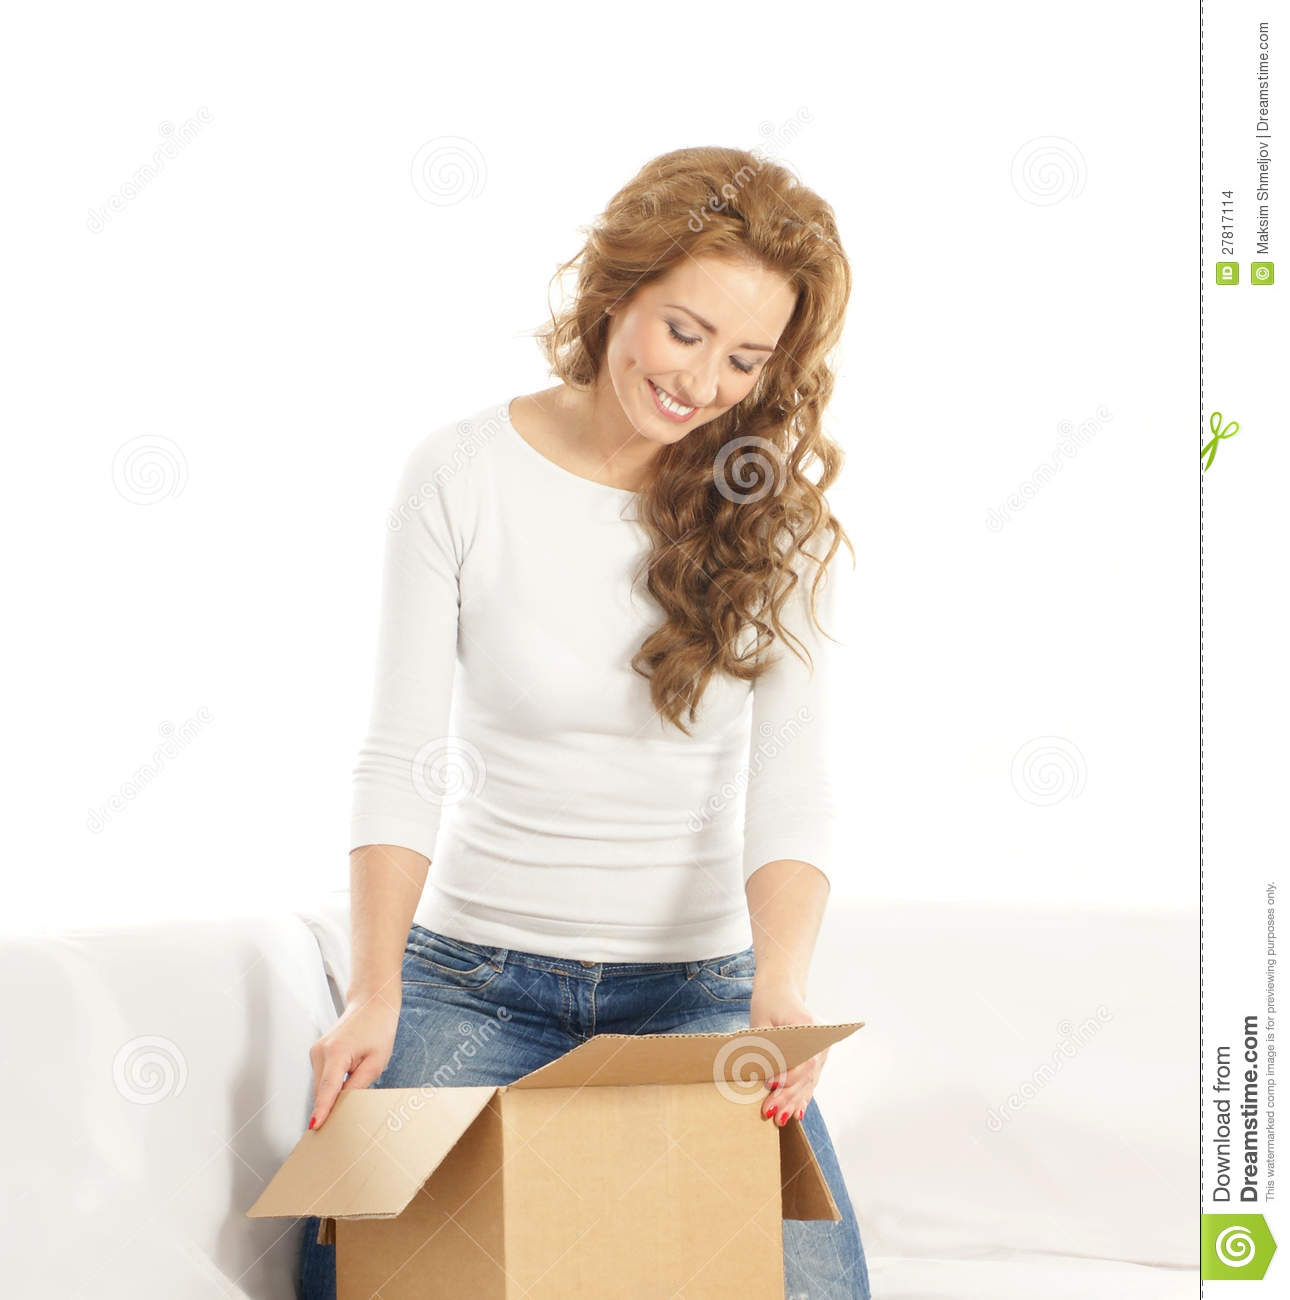 Young Woman Opening A Cardboard Box Stock Images - Image: 27817114